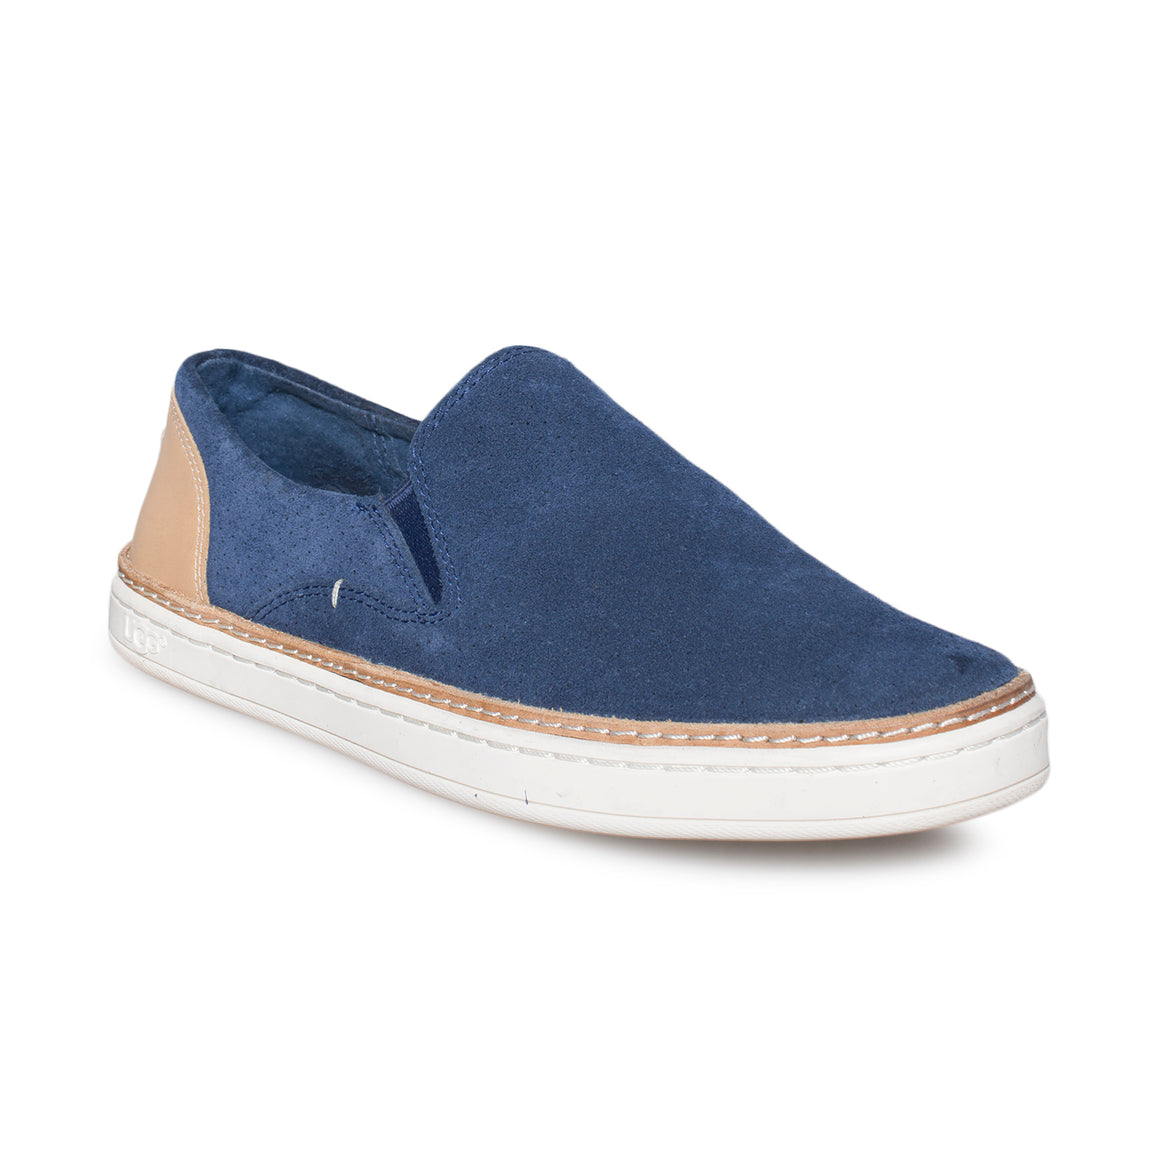 UGG Adley Perf Navy Shoes